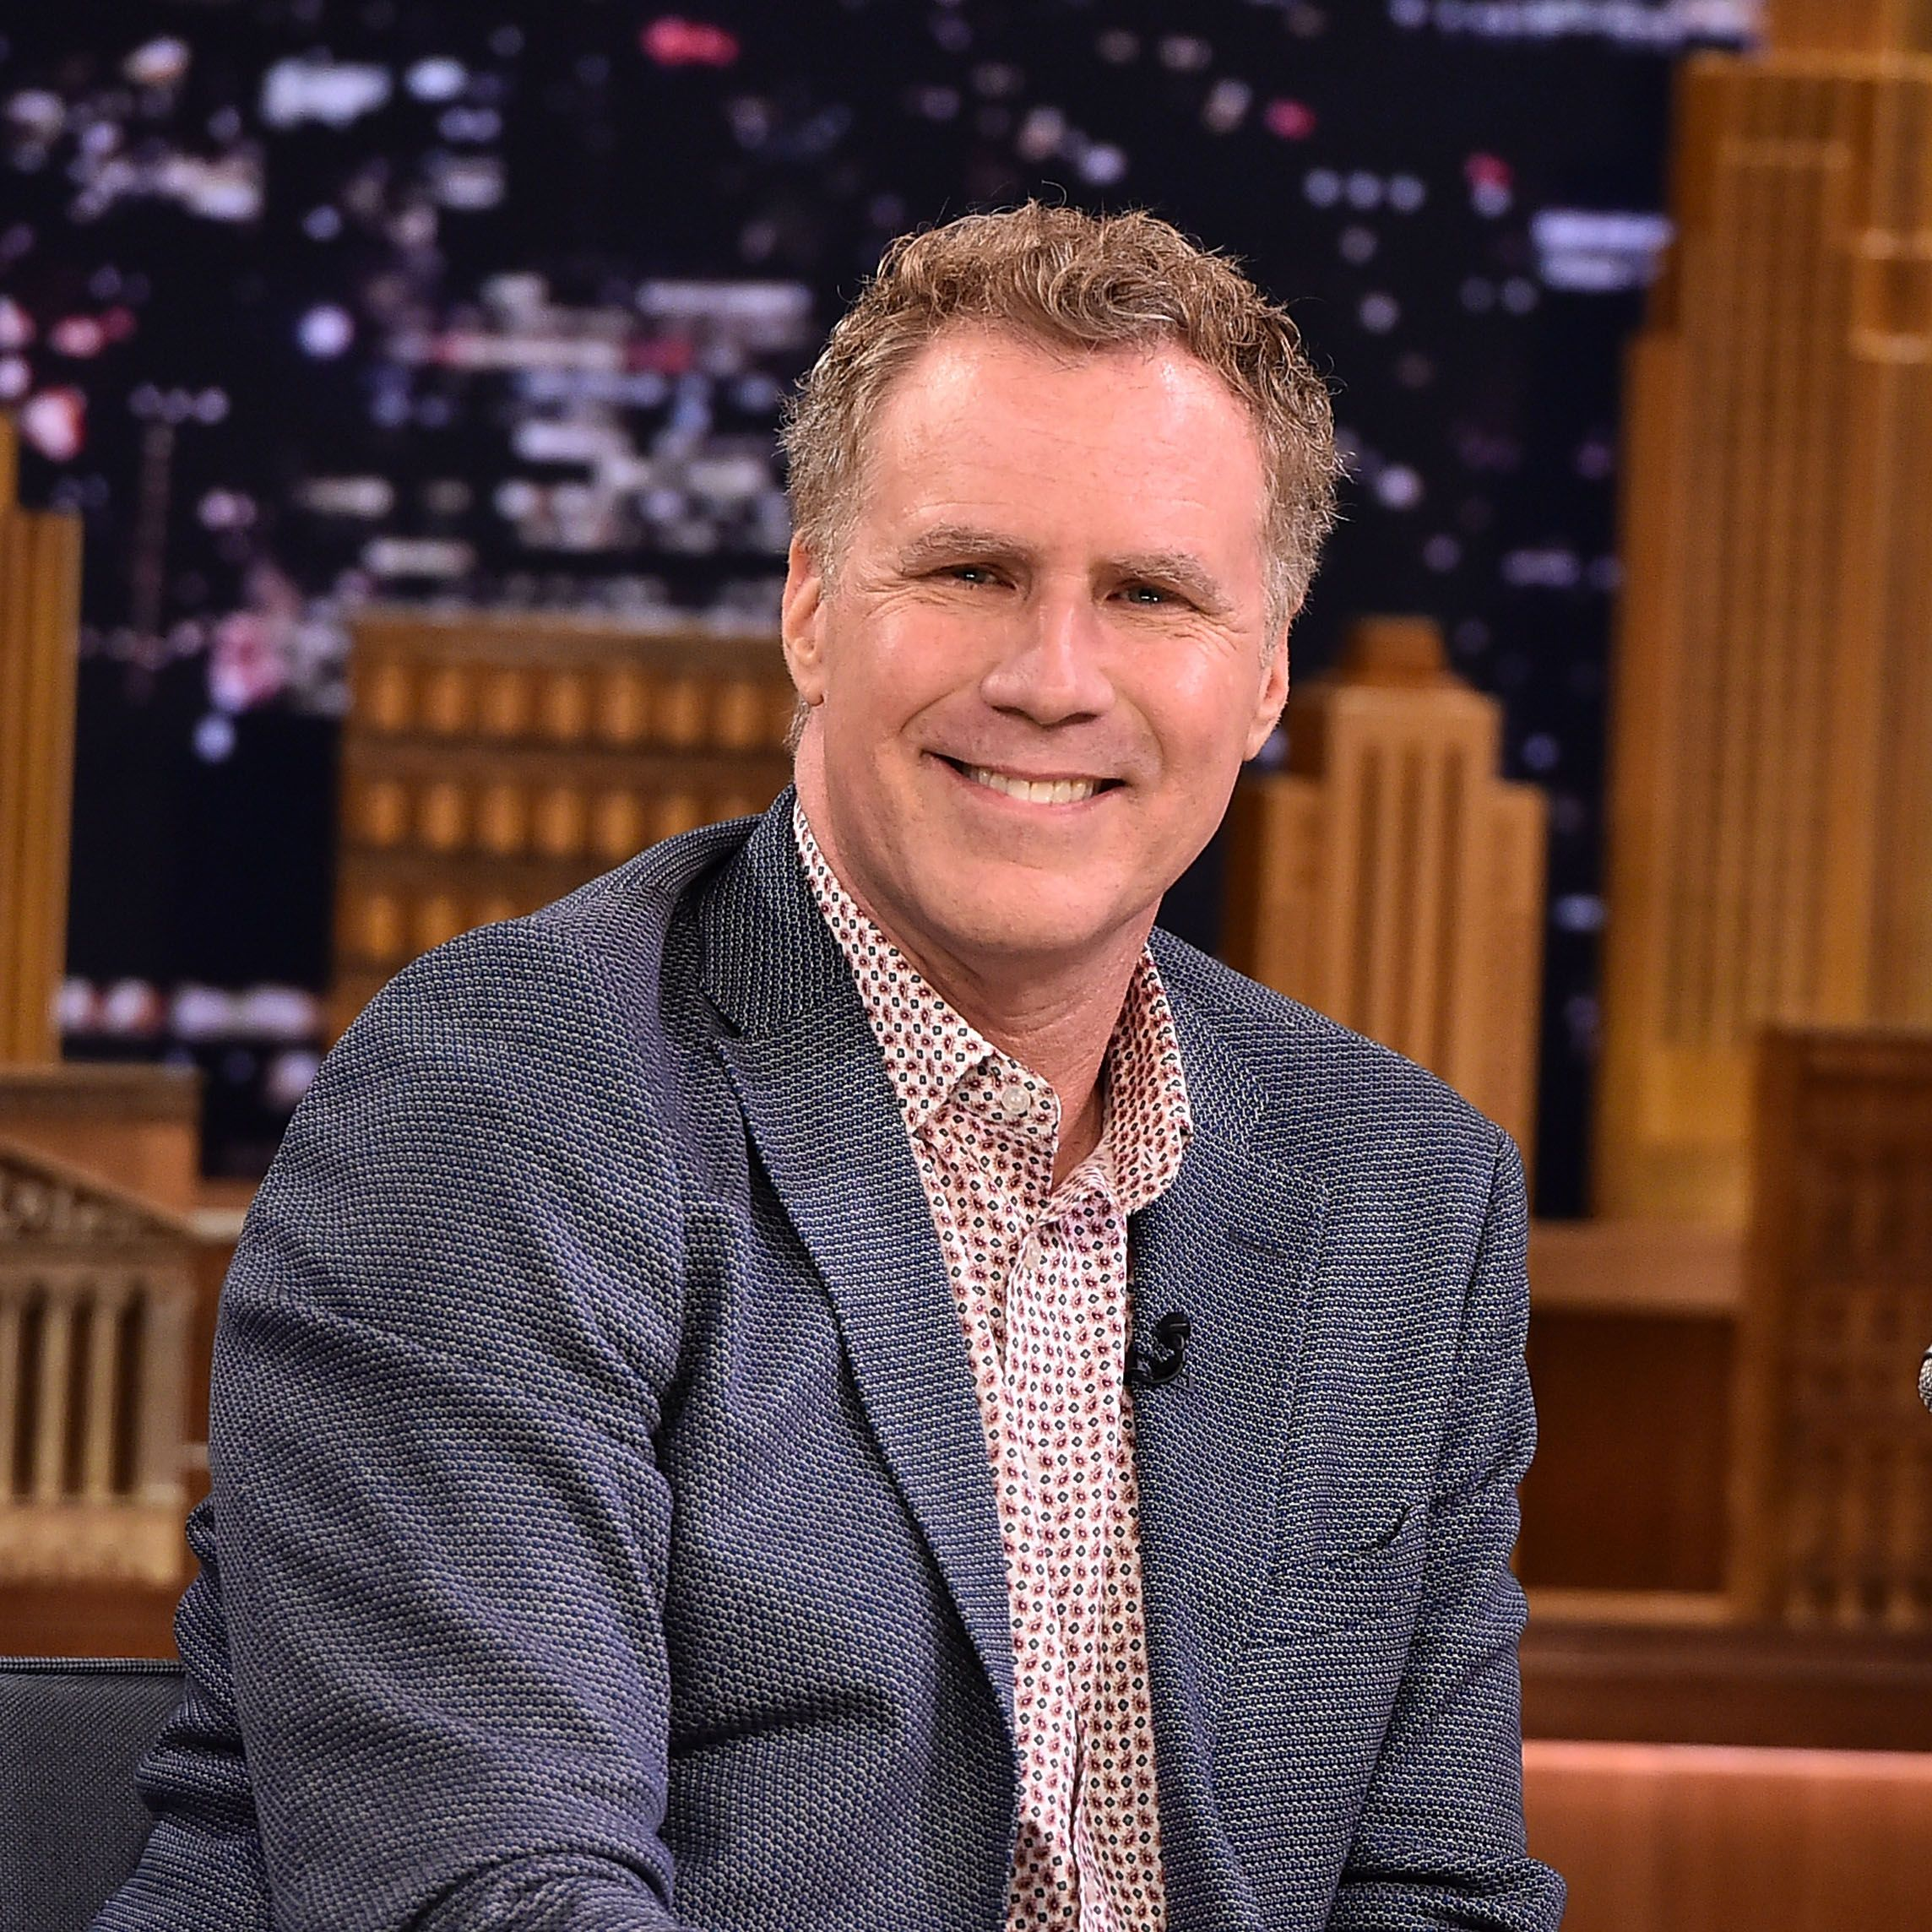 Will Ferrell to Star in New Netflix Comedy About the Eurovision Song Contest